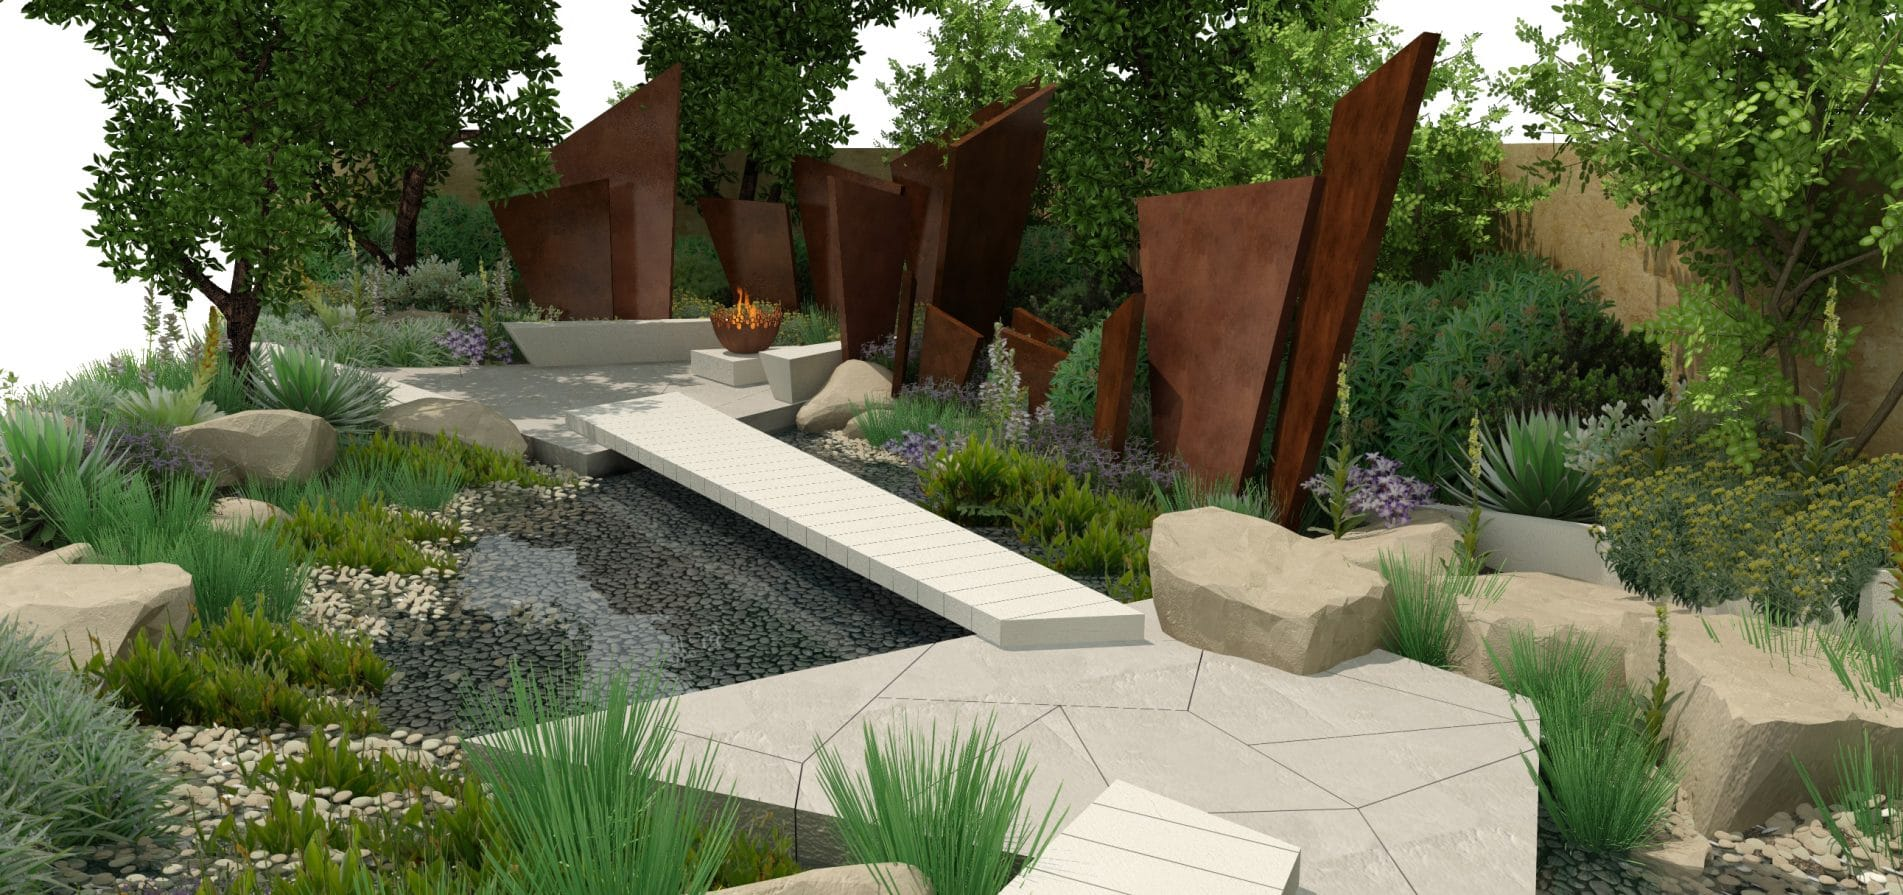 Chelsea flower show 2016 andy sturgeon design for Garden designs 2016